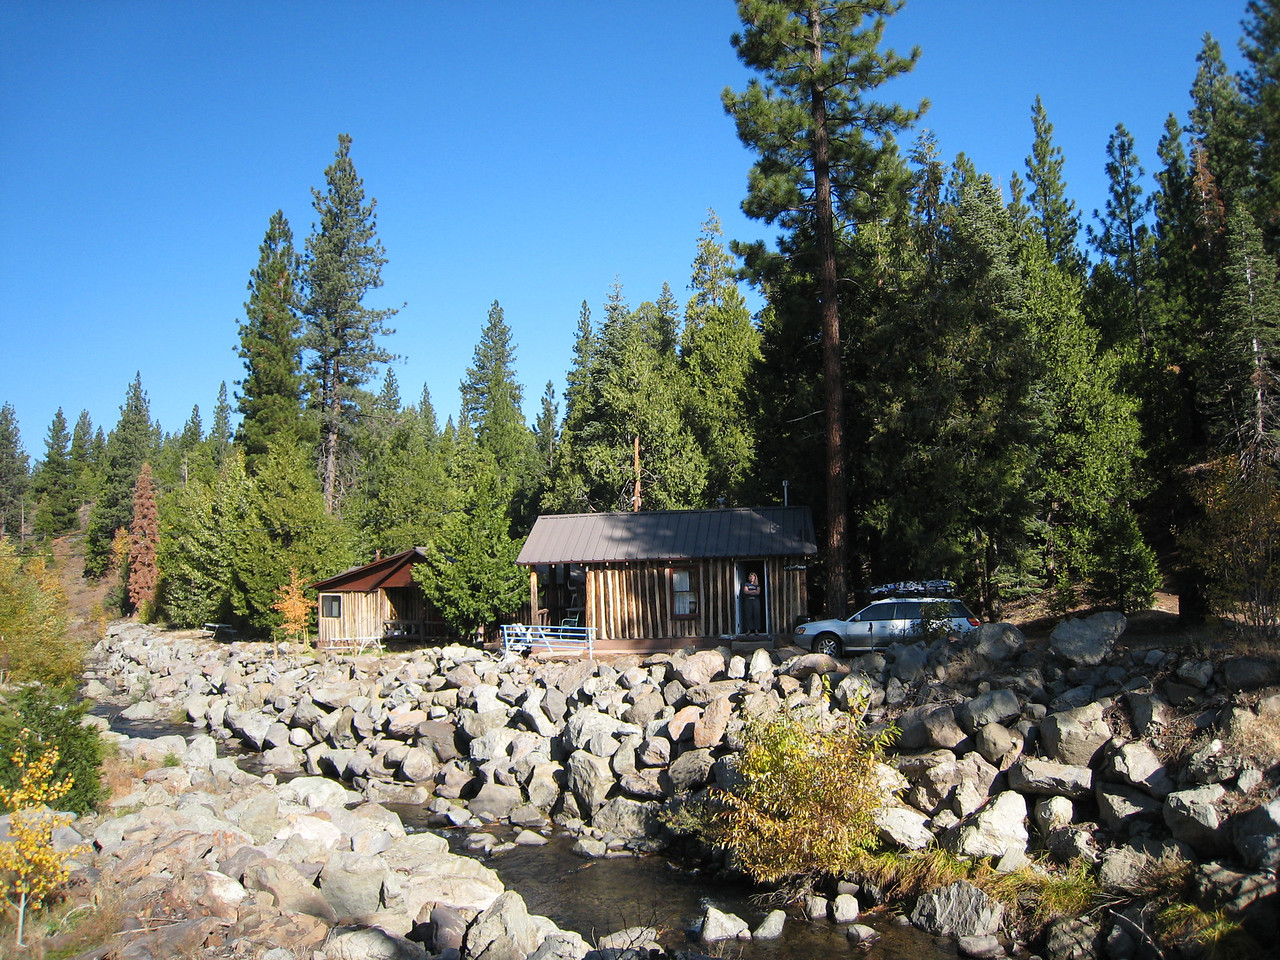 Here's our cabin.  Right on the river... Truckee river?  Dunno... but I saw a few fish when I glanced into the river when crossing the bridge.